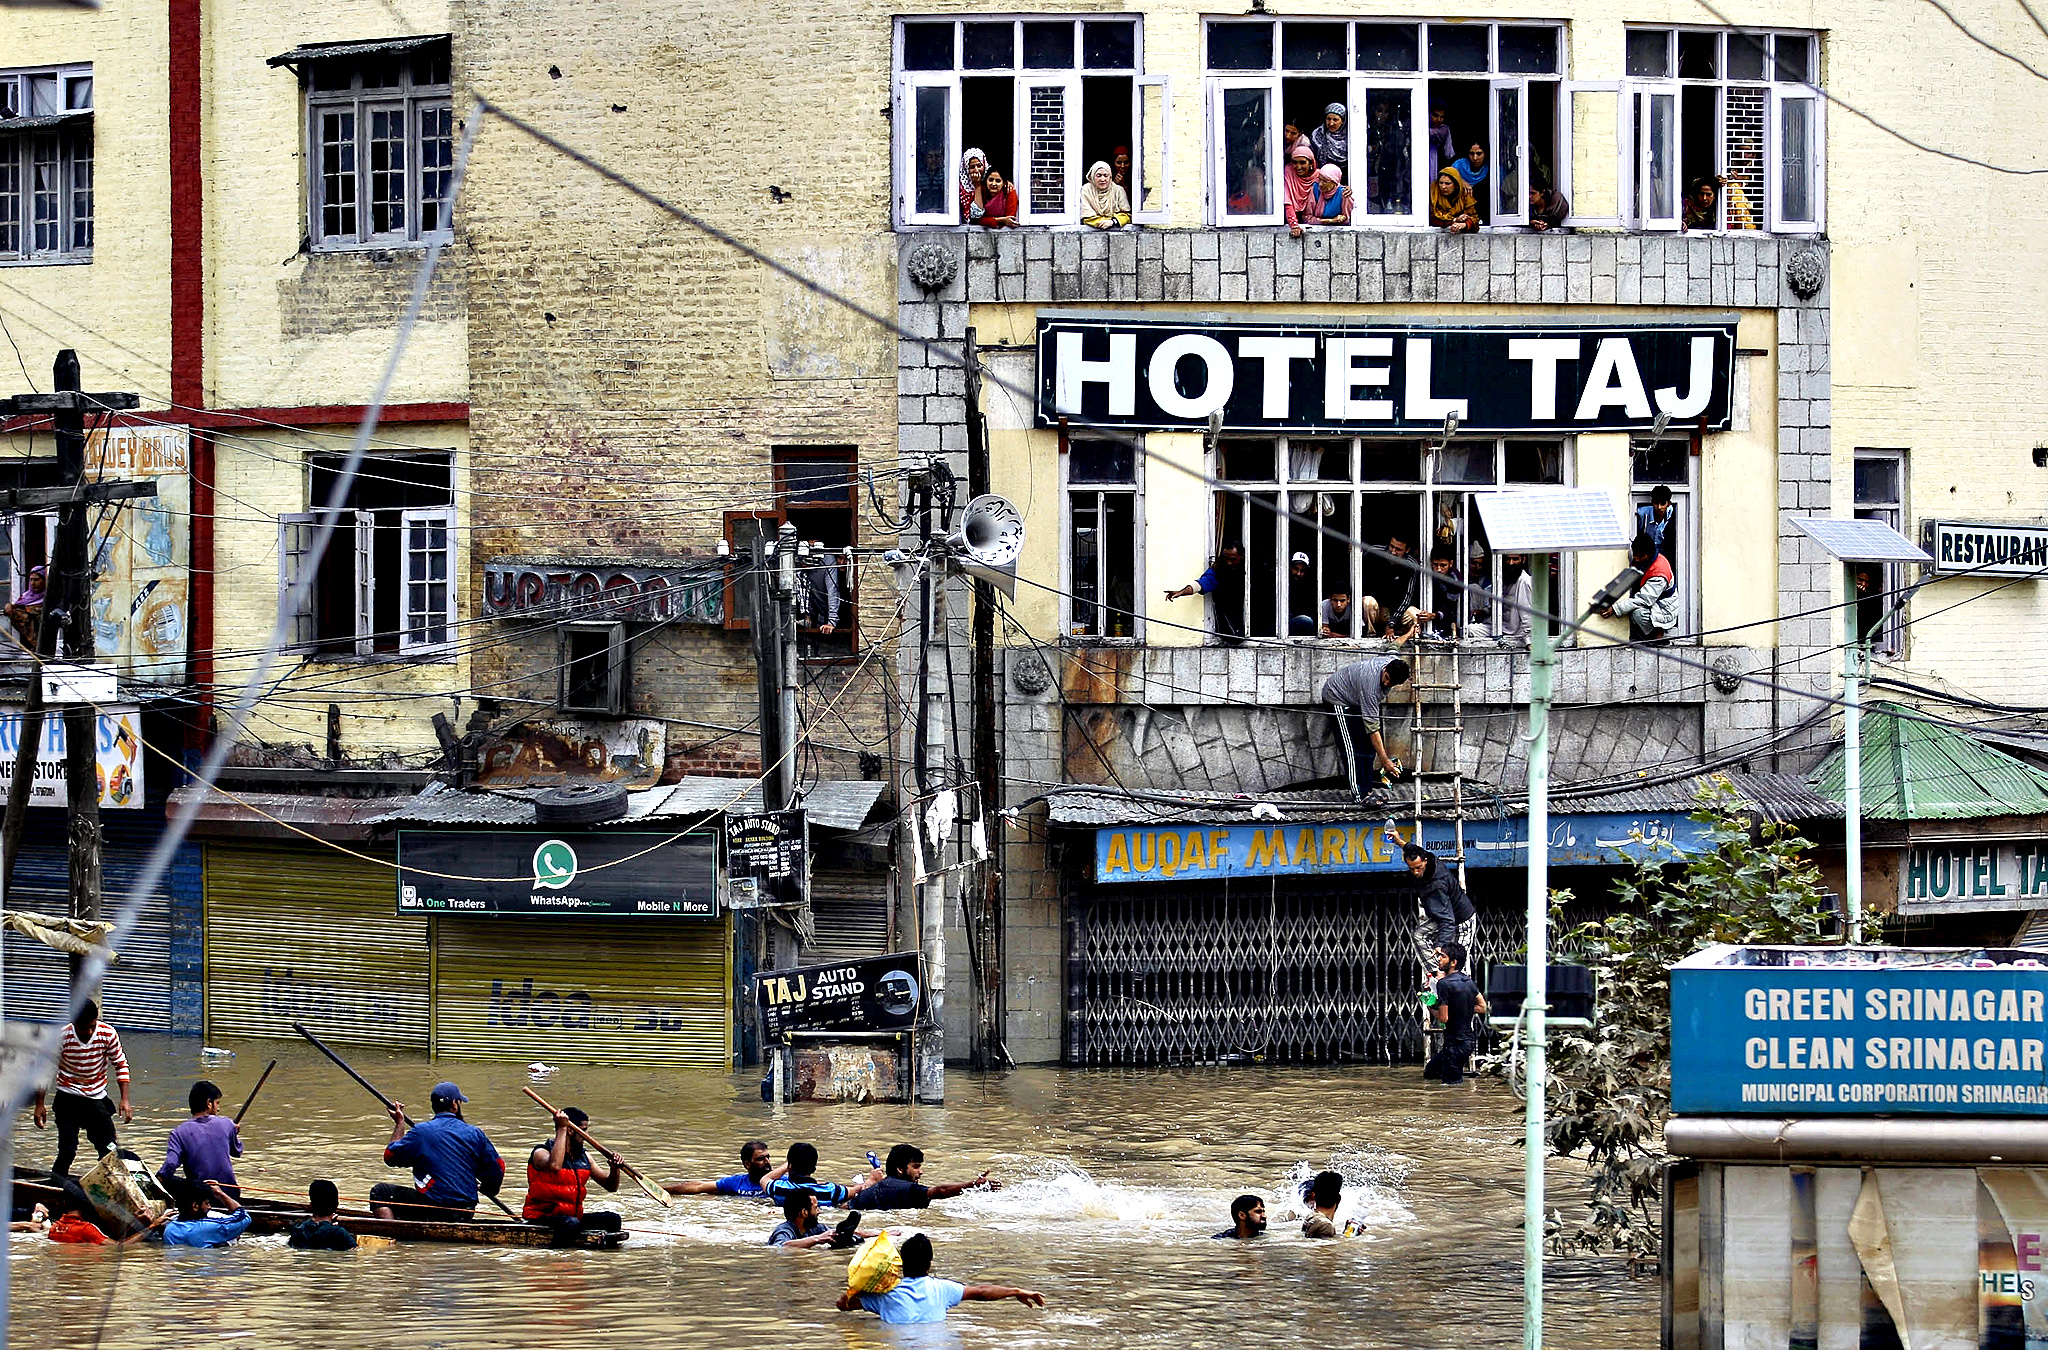 Flood victims watch from the windows of a hotel as Kashmiri volunteers try to get relief material across to them in the city center of Srinagar, India, Friday, Sept. 12, 2014.  Flash floods have killed hundreds, washed away crops, damaged tens of thousands of homes and affected over a million people since Sept. 3, when heavy monsoon rains lashed Pakistan's eastern Punjab province and the Kashmir region, claimed by both India and Pakistan.